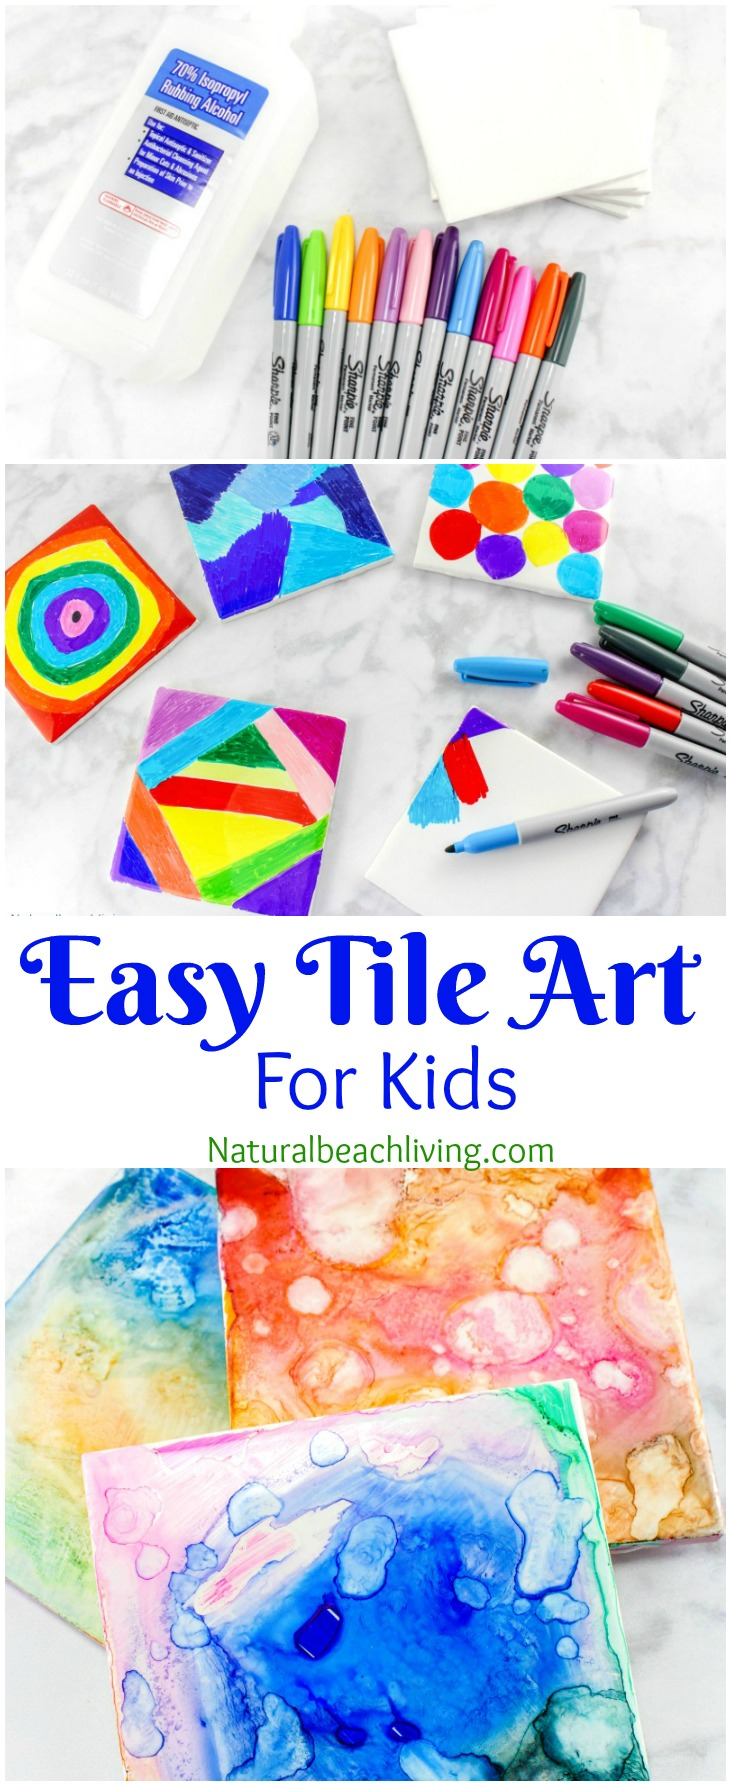 Easy Tile Art for Kids That Everyone Will Enjoy, Sharpie Art is the coolest, perfect art for kids, Fun Art process, Sharpie Crafts, Kid made gifts, Tie Dye #kidsart #kidscrafts #giftidea